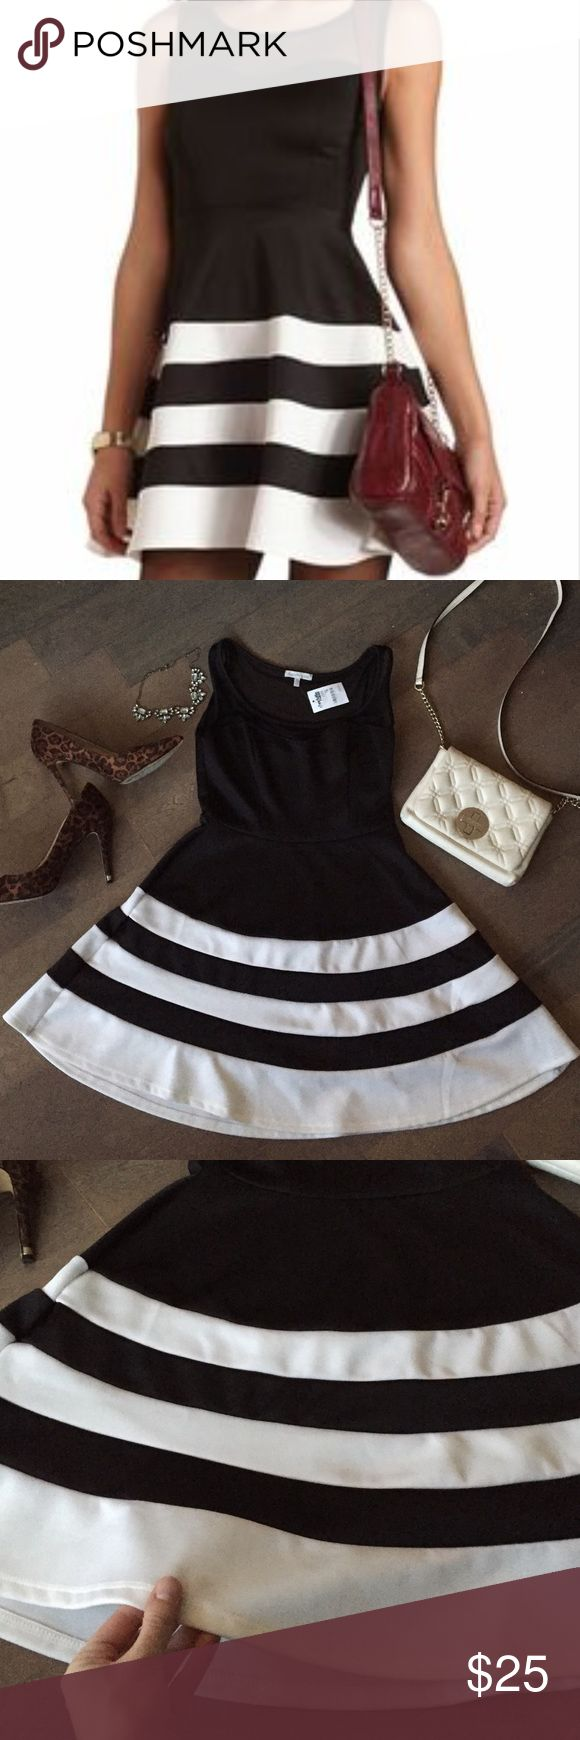 Black Friday Special!⭐️ Black White Striped Dress! BRAND NEW WITH TAGS! ⭐️💕 Gorgeous black and white striped dress! Has sheer neckline and shoulder straps for a flirty look! Perfect for the holidays 🎄🍷⭐️ Size medium. Charlotte Russe Dresses